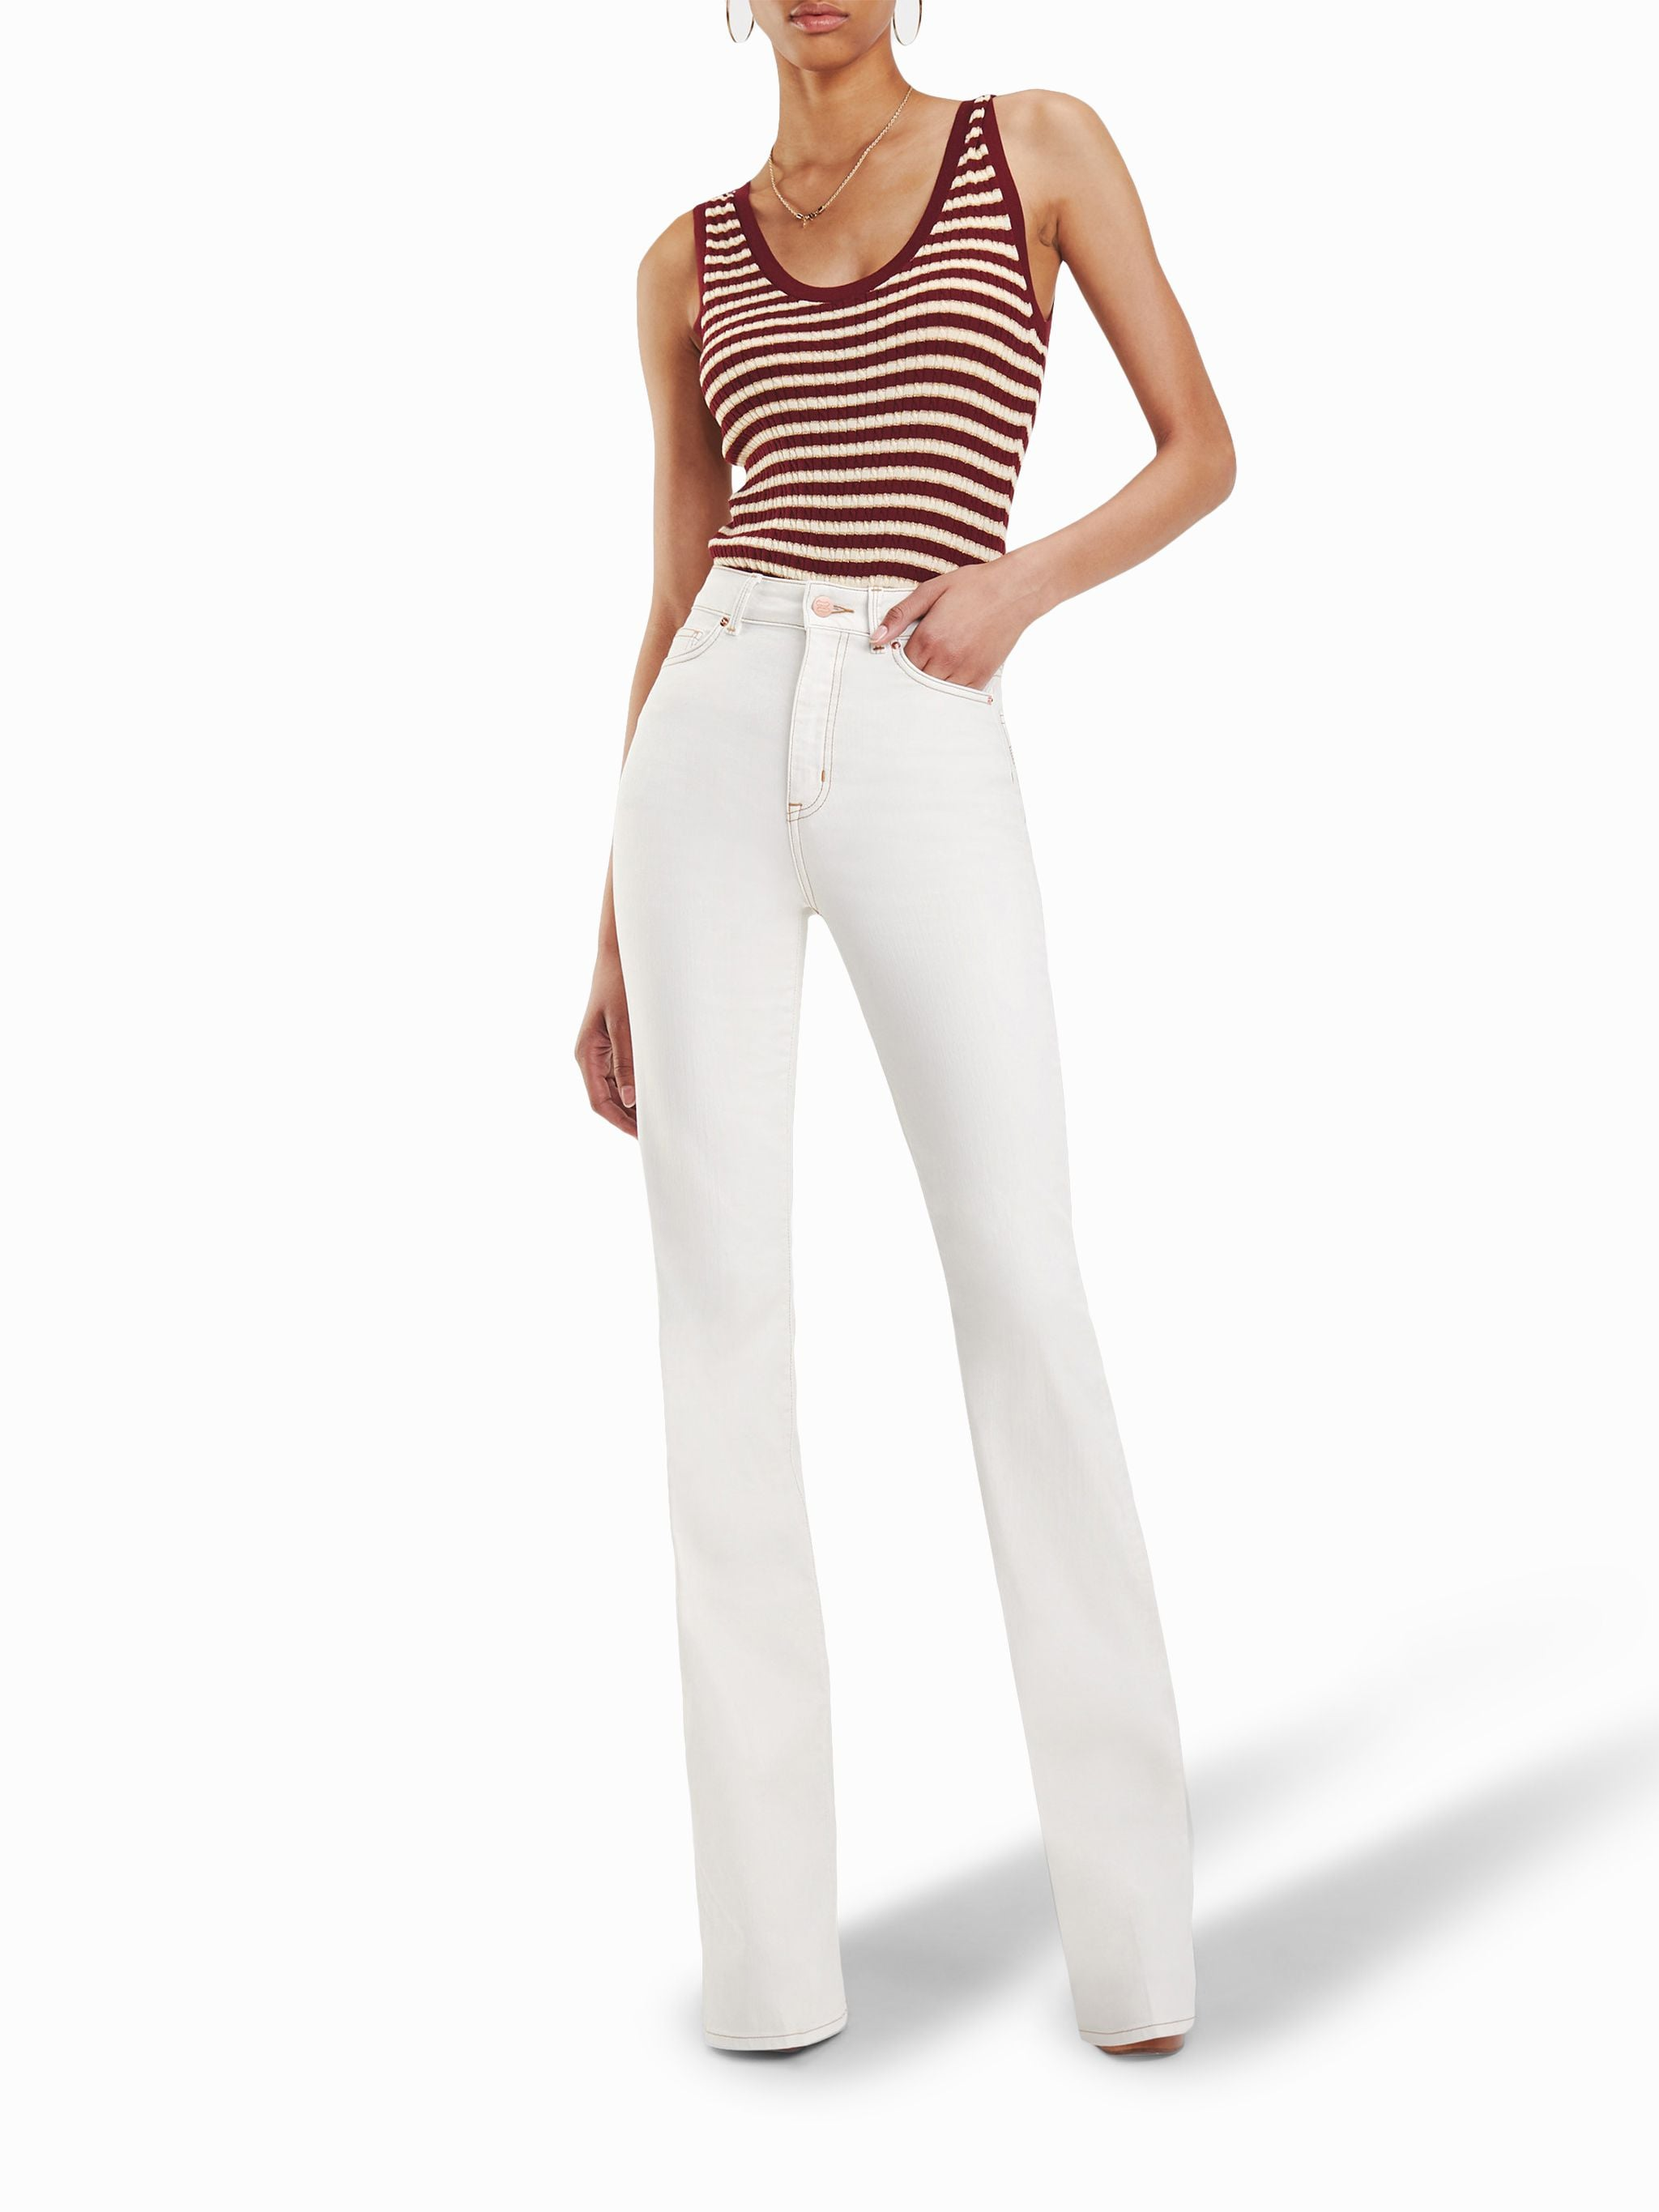 x Zendaya Leather Flare Pants by Tommy Hilfiger, available on eraldo.com Bella Hadid Pants Exact Product